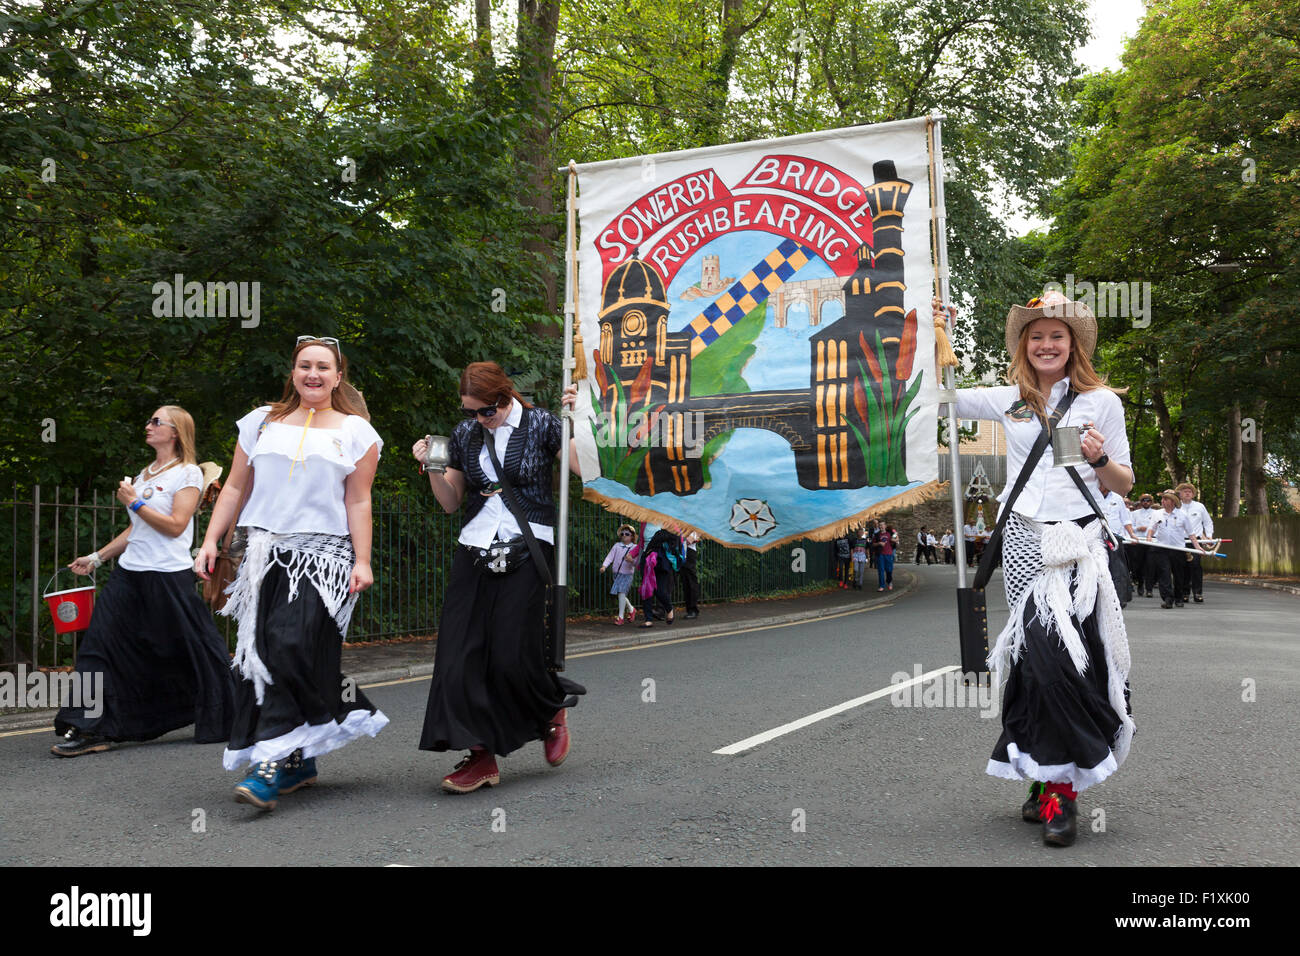 rushbearing-festival-procession-sowerby-bridge-west-yorkshire-F1XK00.jpg